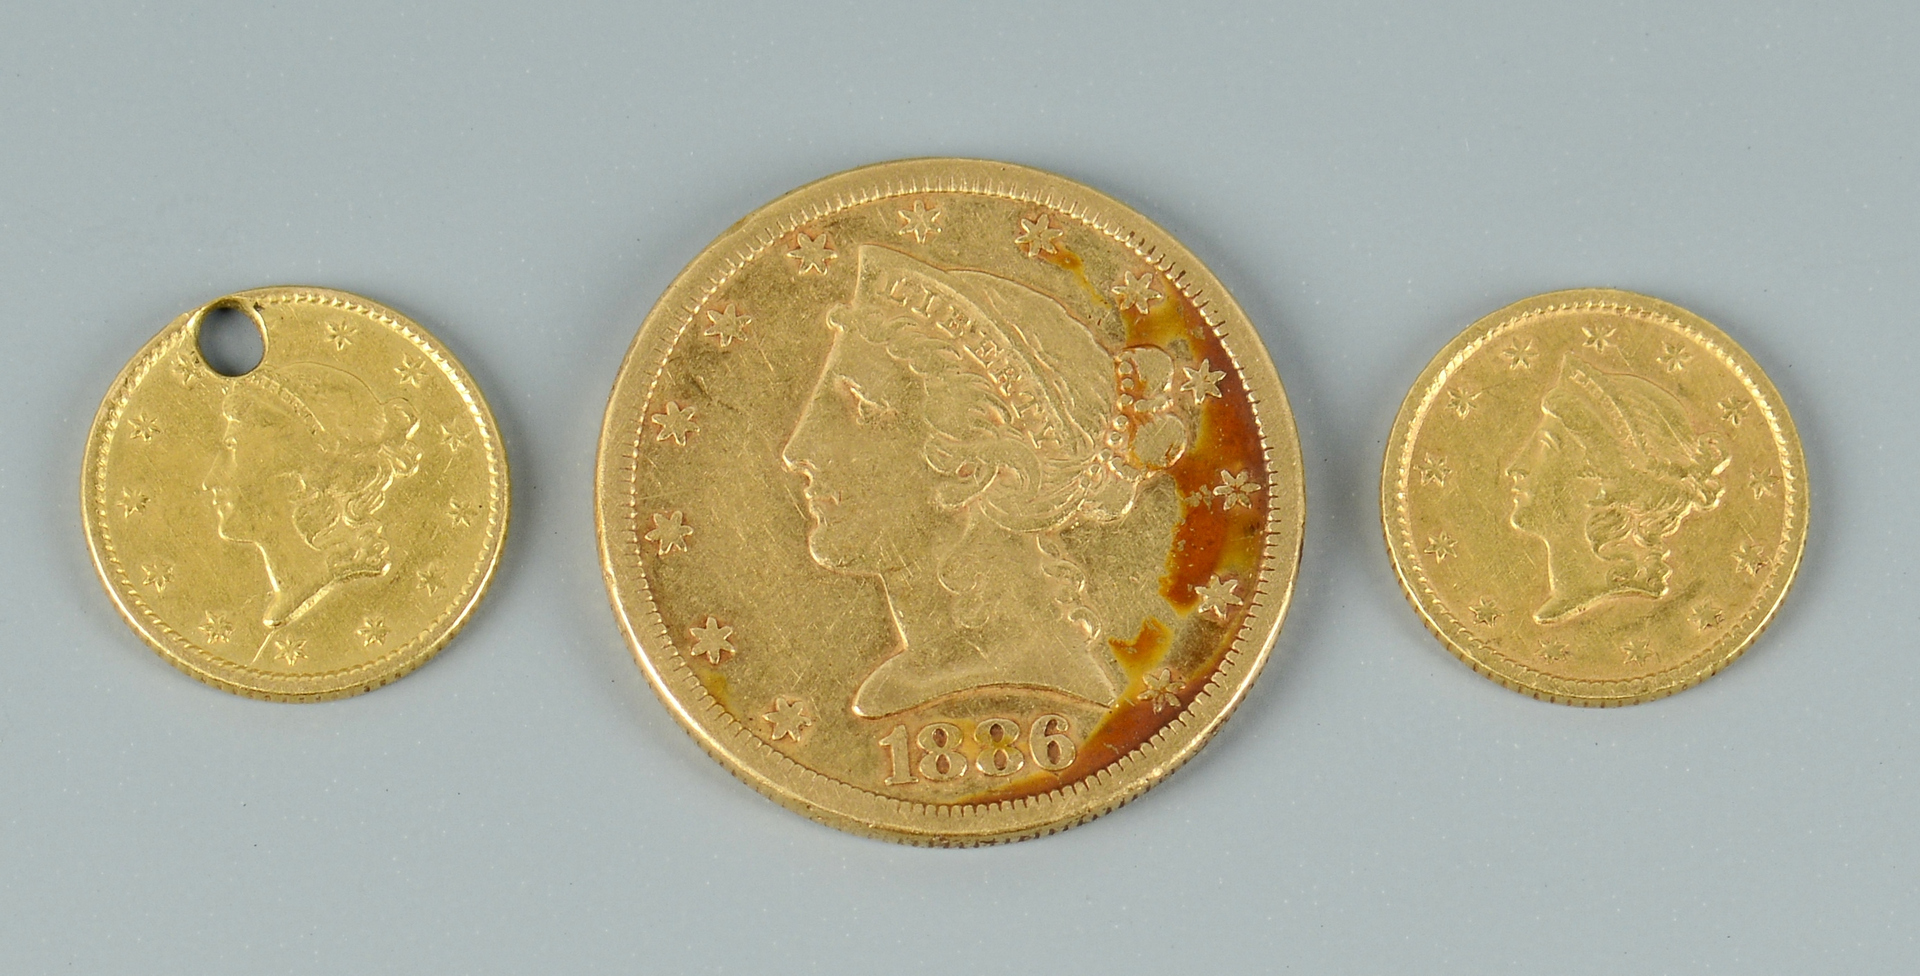 Lot 3088086: 3 Liberty Head Gold Coins, $5 and $1